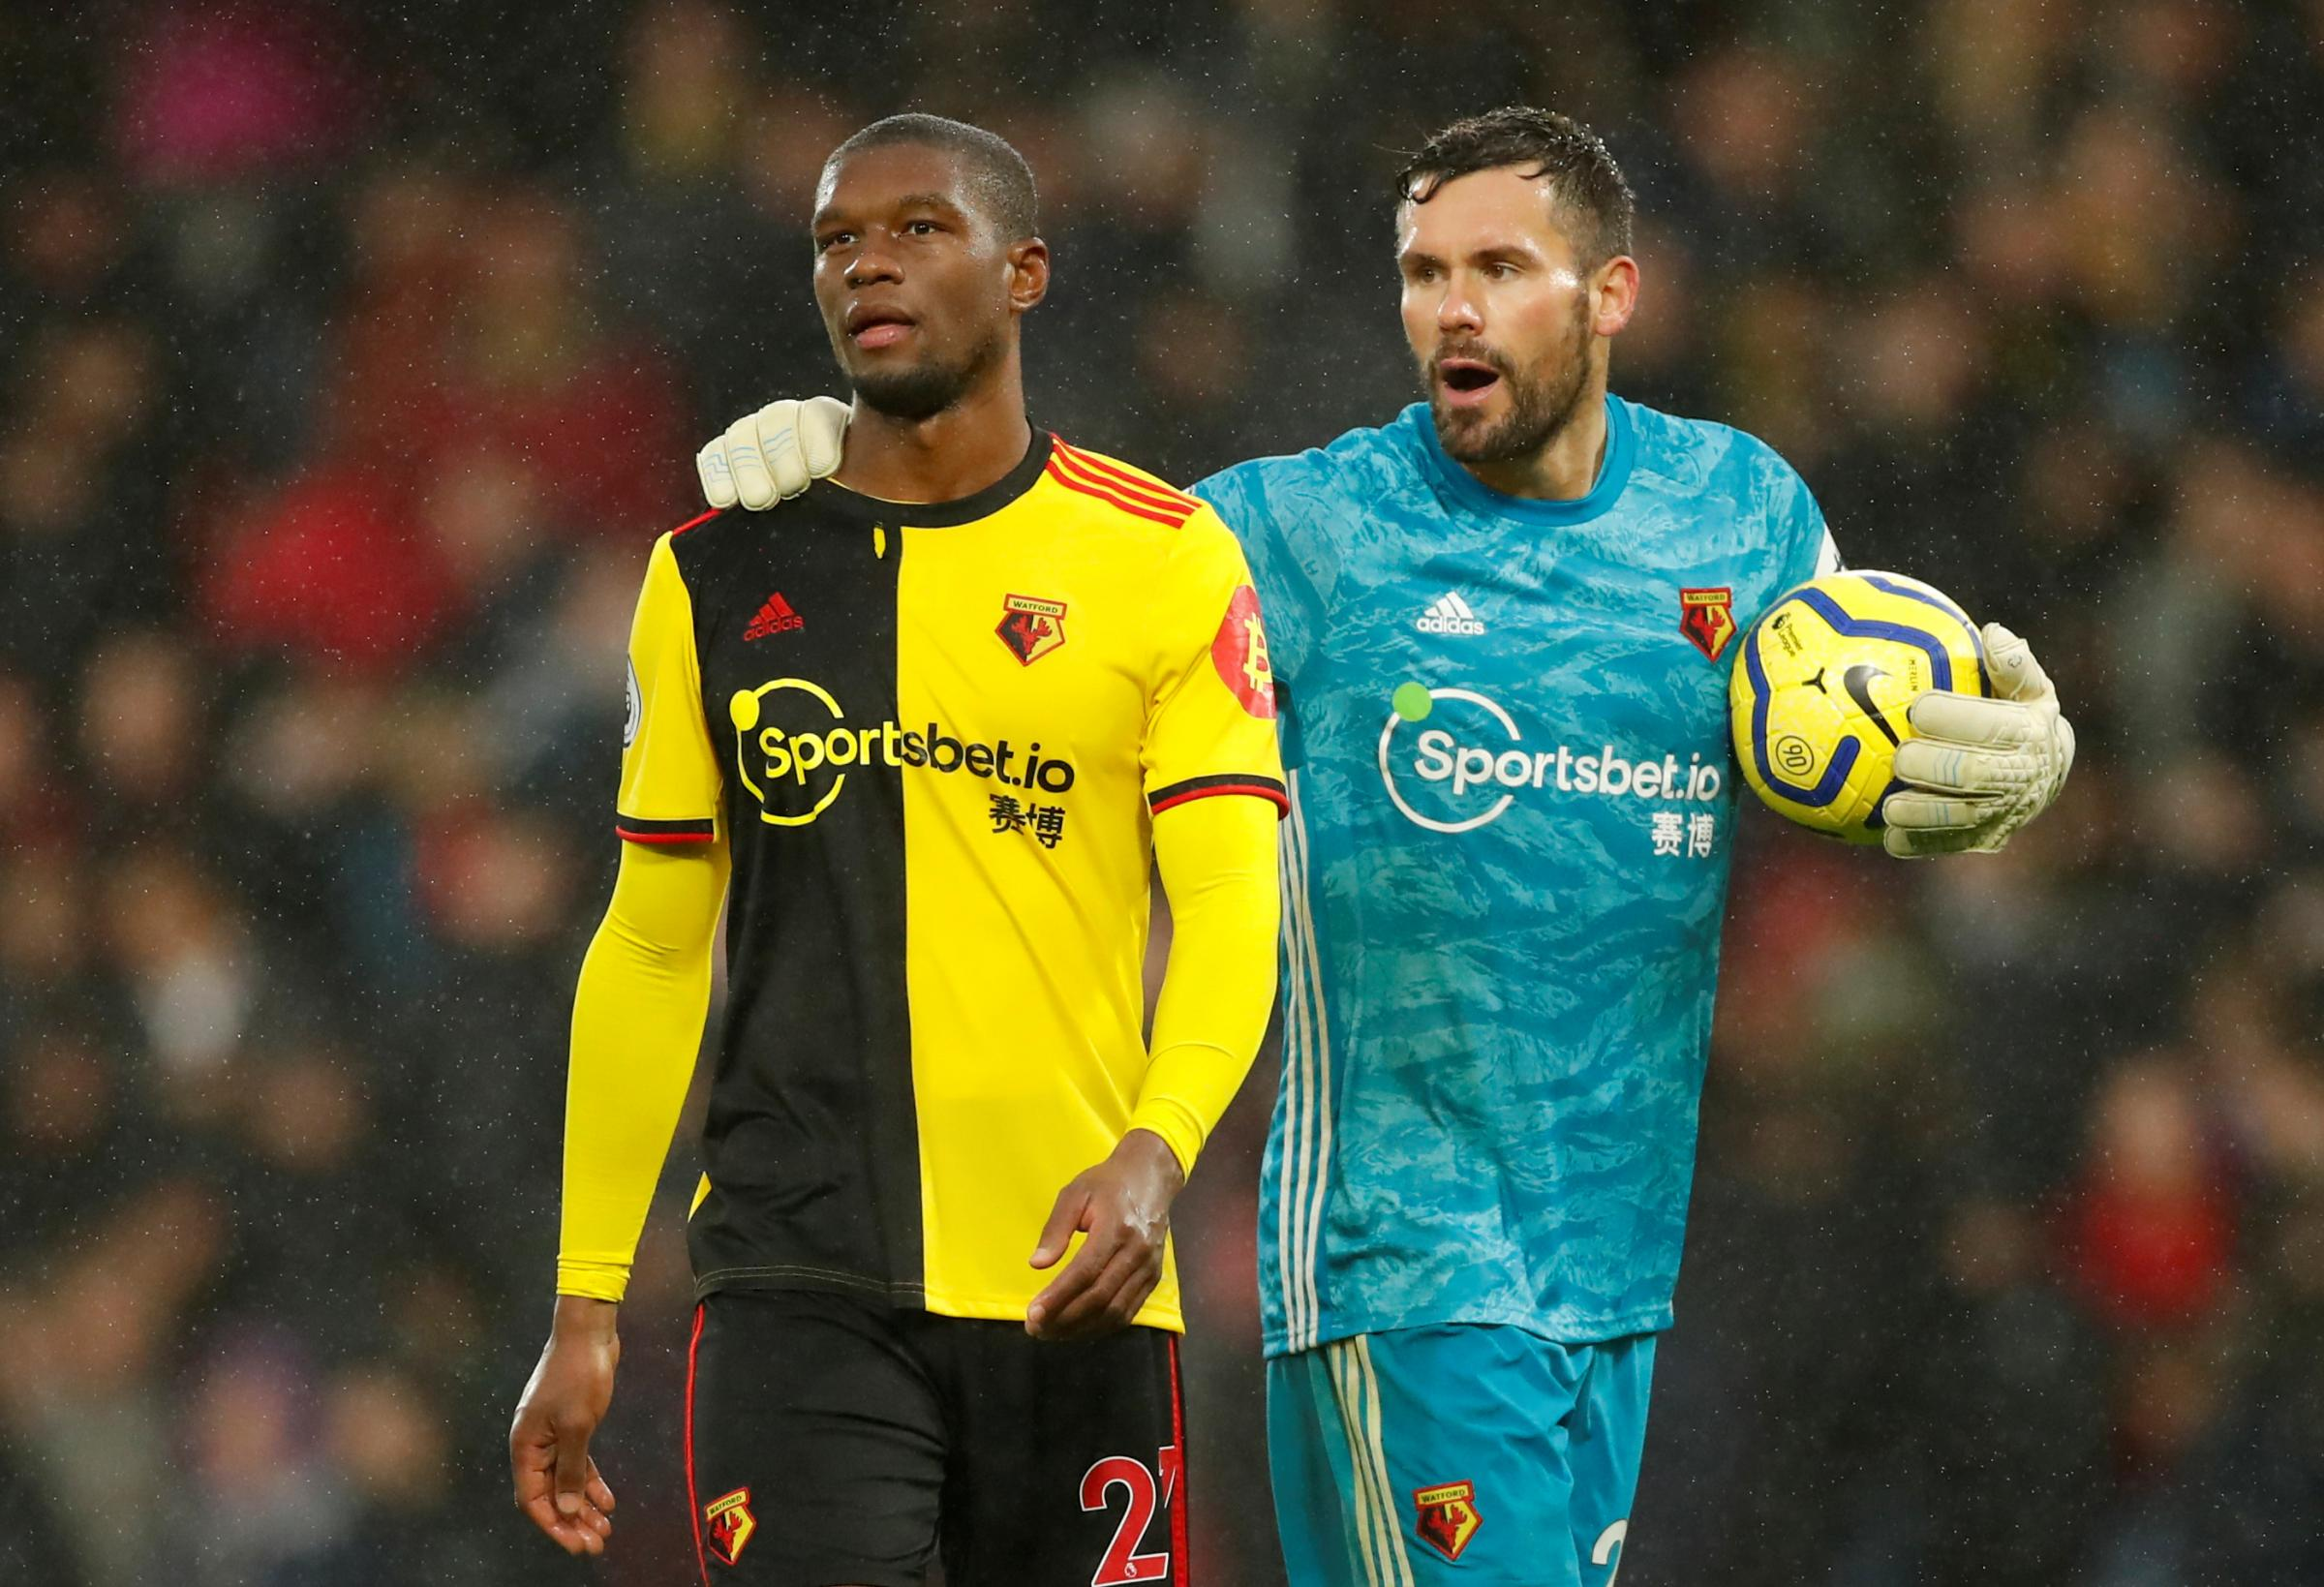 Christian Kabasele claims Watford should not have to rely on Ben Foster after Chelsea defeat